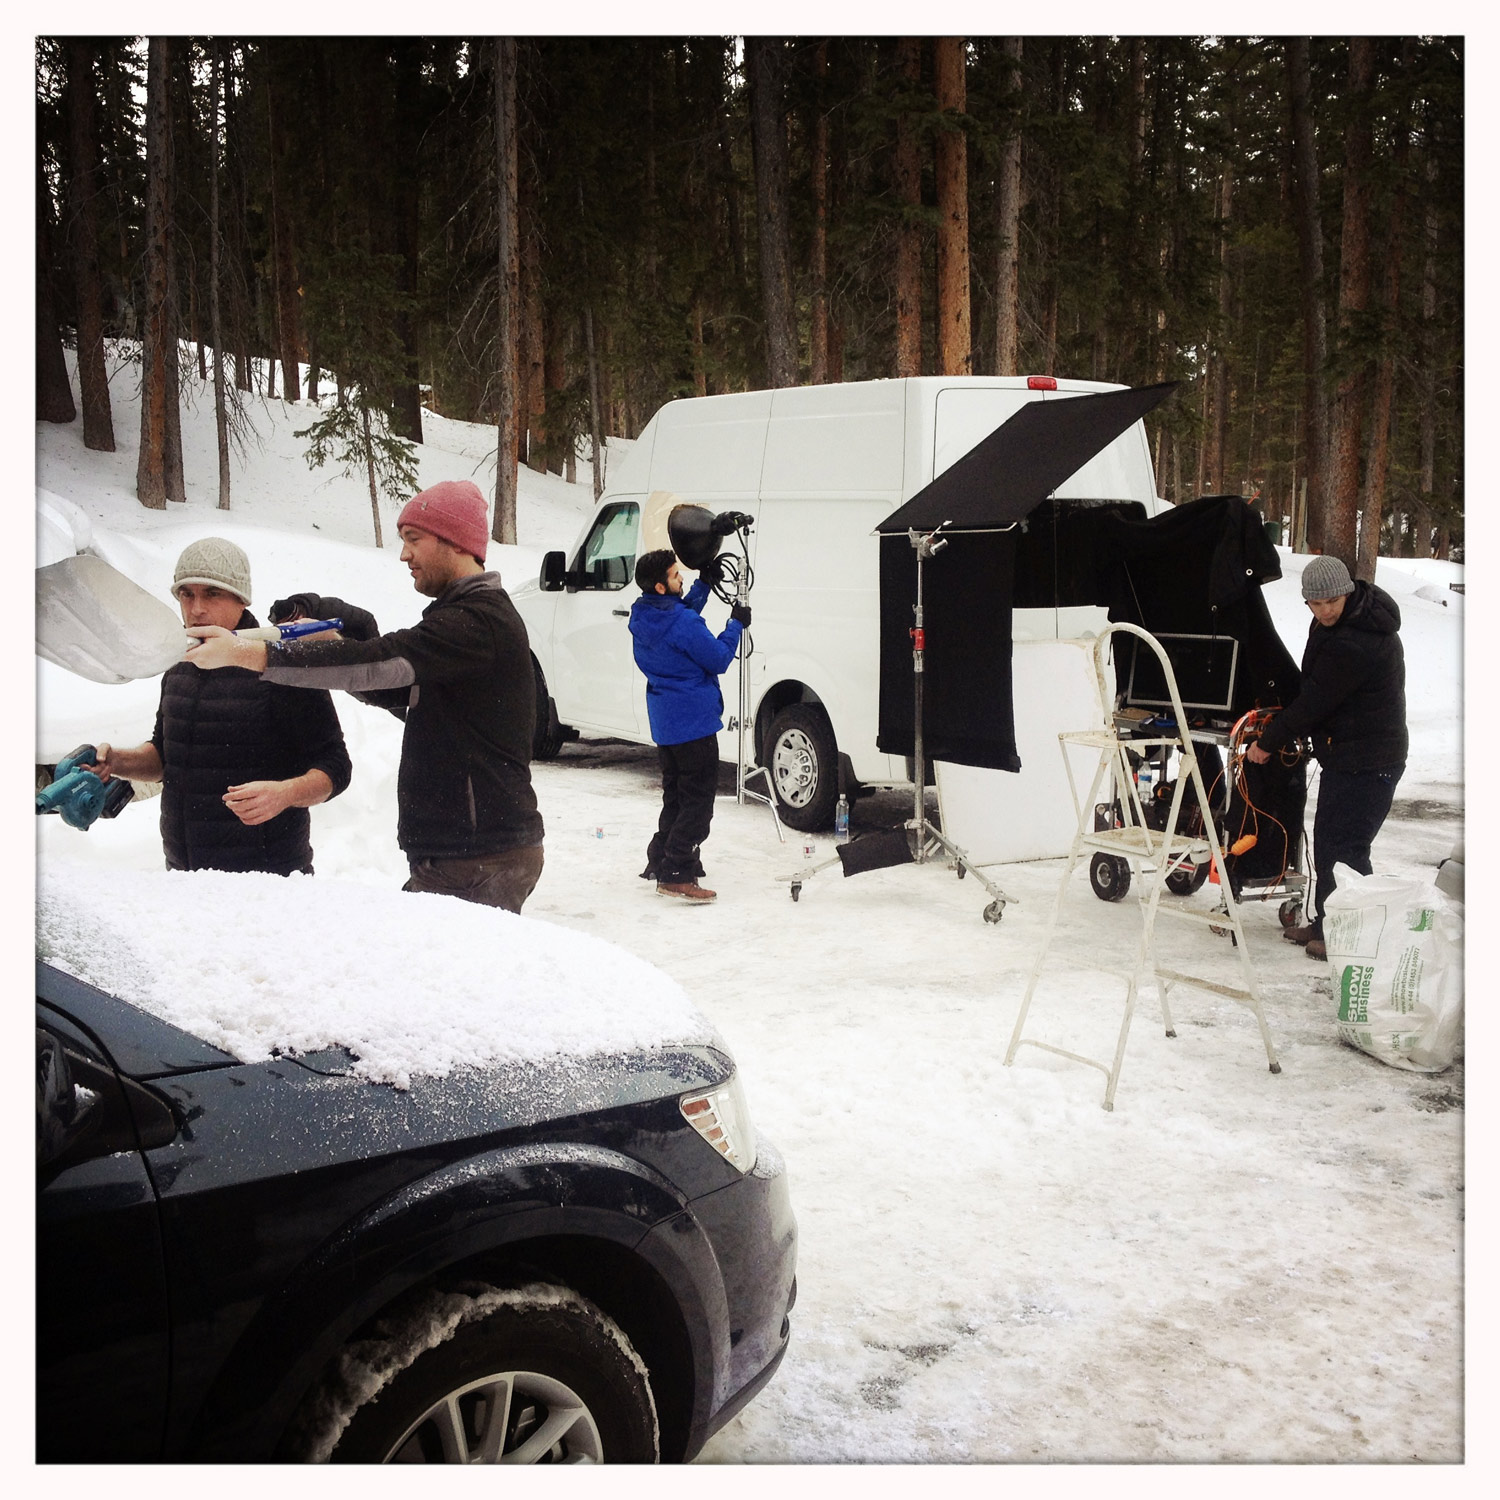 Prop stylist, Evan Madden (far left) adding snow to car.  Evan's represented by  Artist Untied .